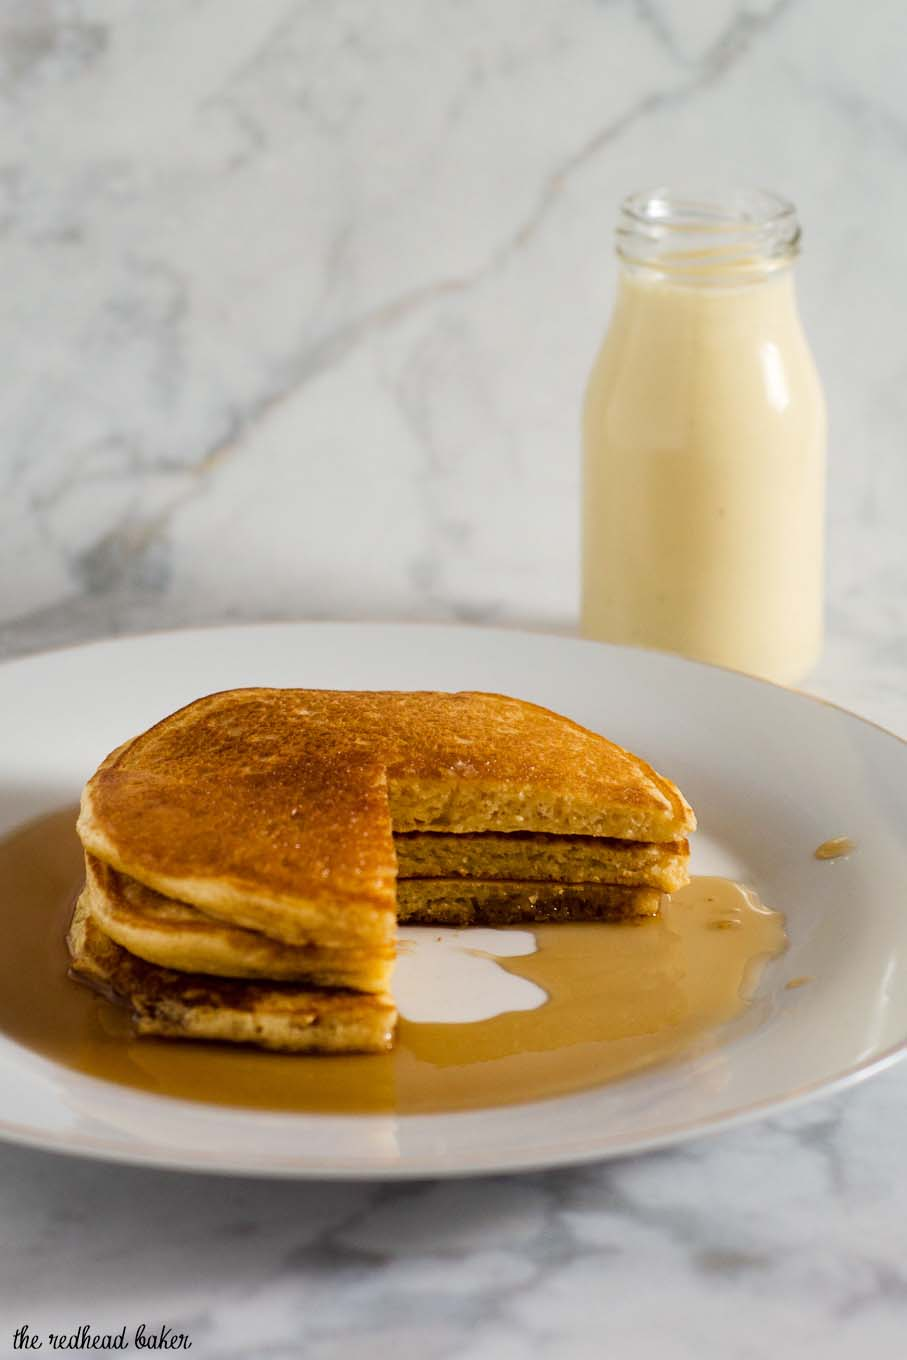 Eggnog pancakes are light and fluffy with the subtle flavor of the traditional Christmas drink, drizzled with nutmeg-infused maple syrup.